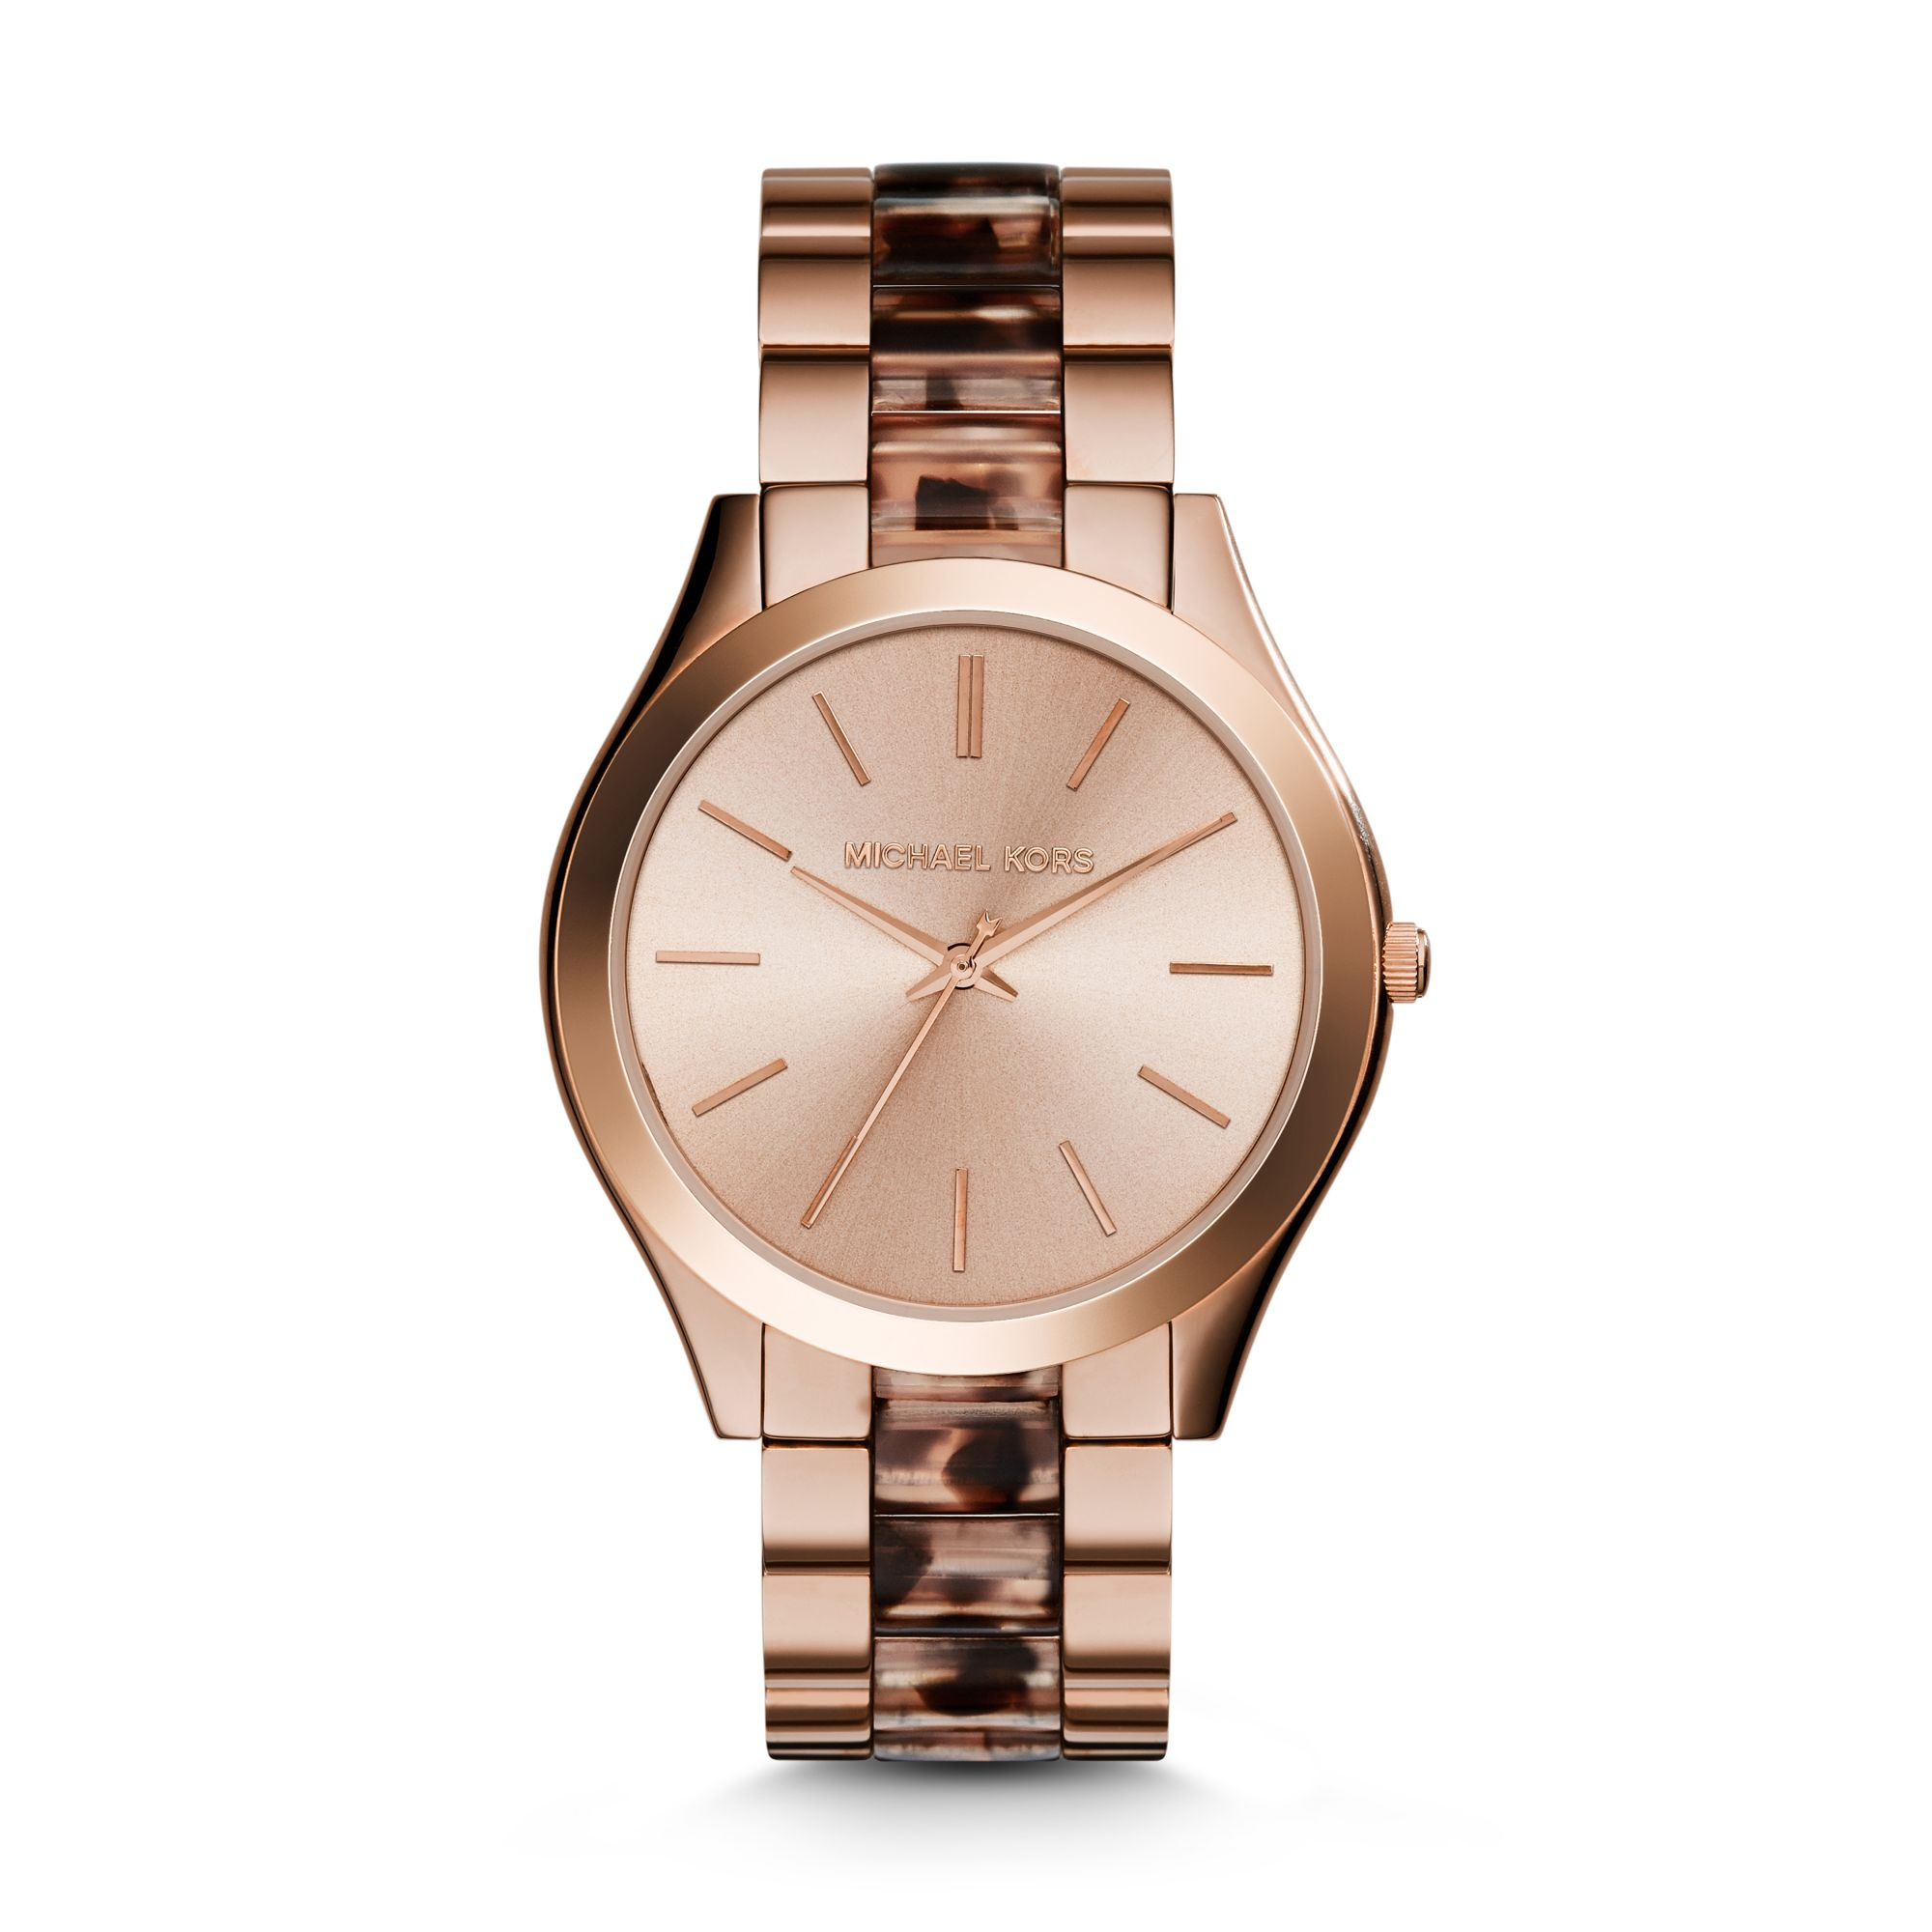 michael kors runway rose gold tone acetate watch in pink. Black Bedroom Furniture Sets. Home Design Ideas